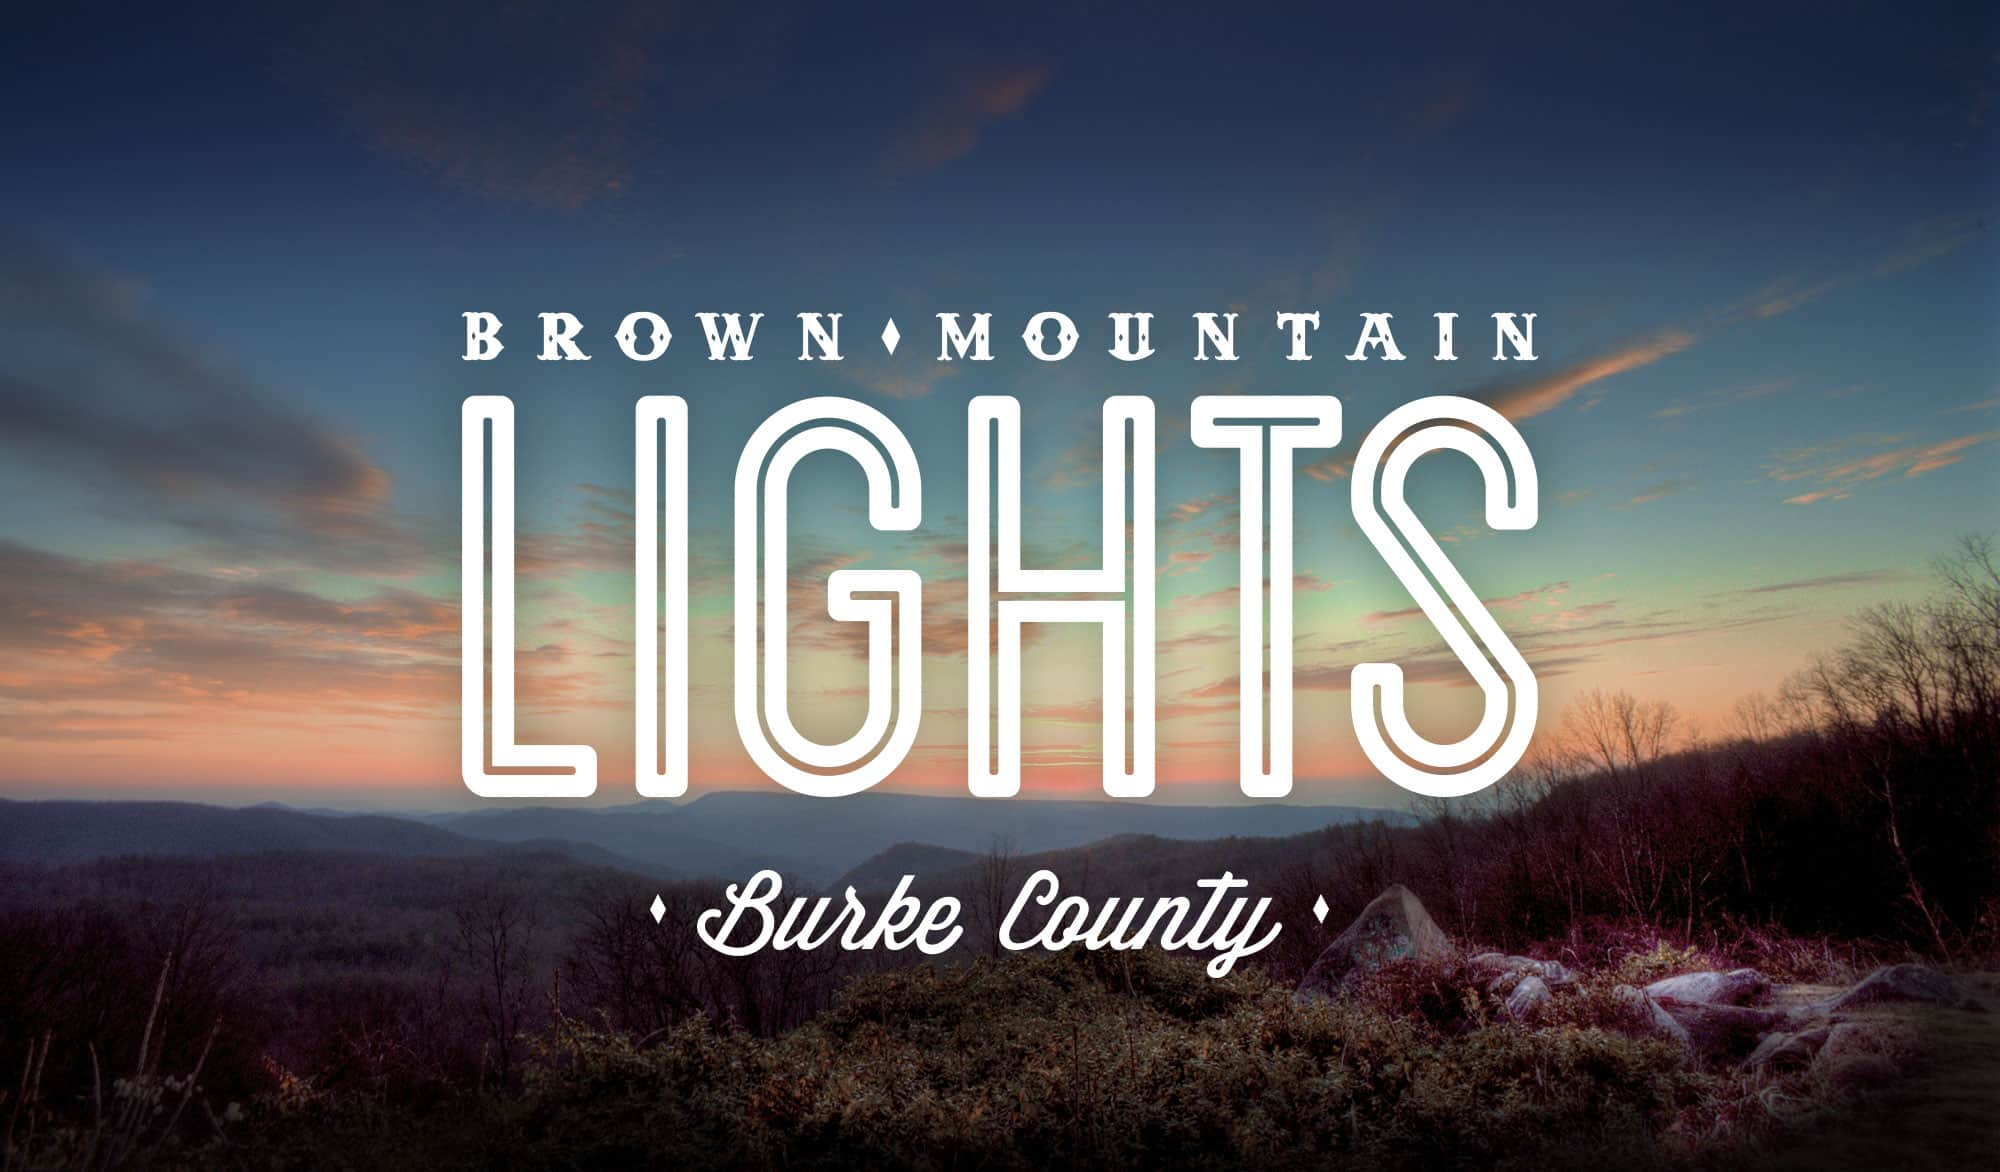 Brown Mountain Lights in Burke County NC  Project 543